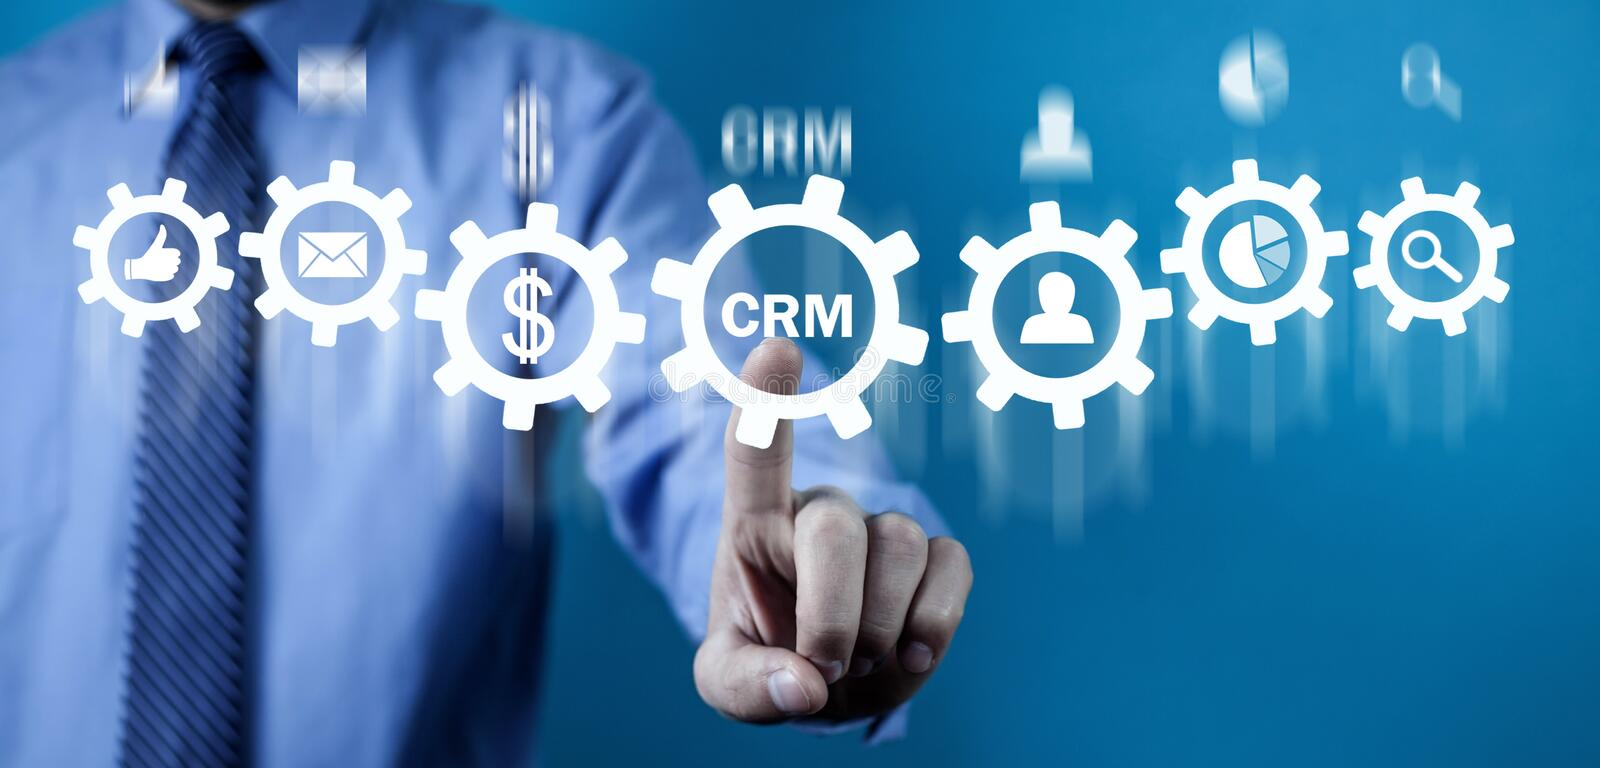 CRM. Customer Relationship Management. Business concept stock photo